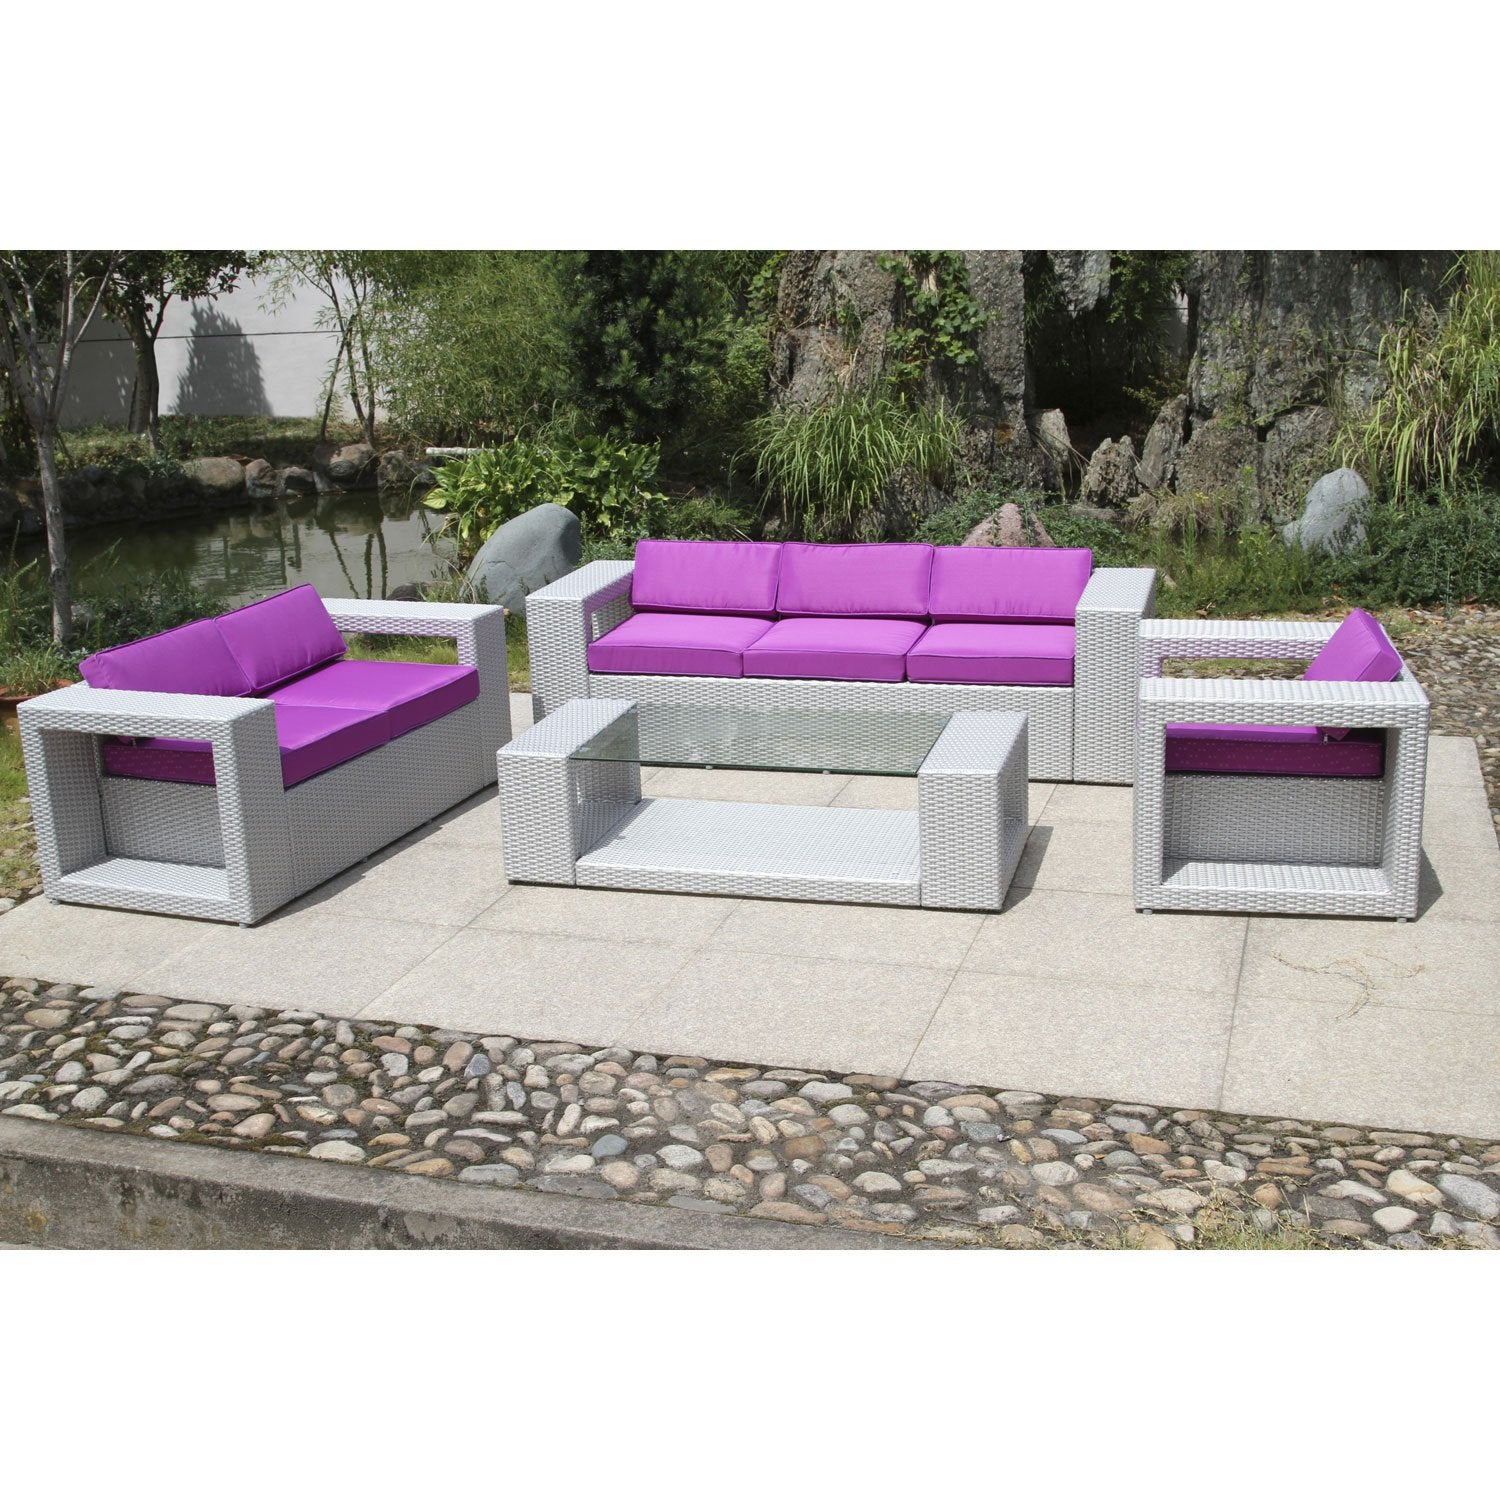 Salon de jardin mediterran e dcb garden leroy merlin for Amazon salon de jardin